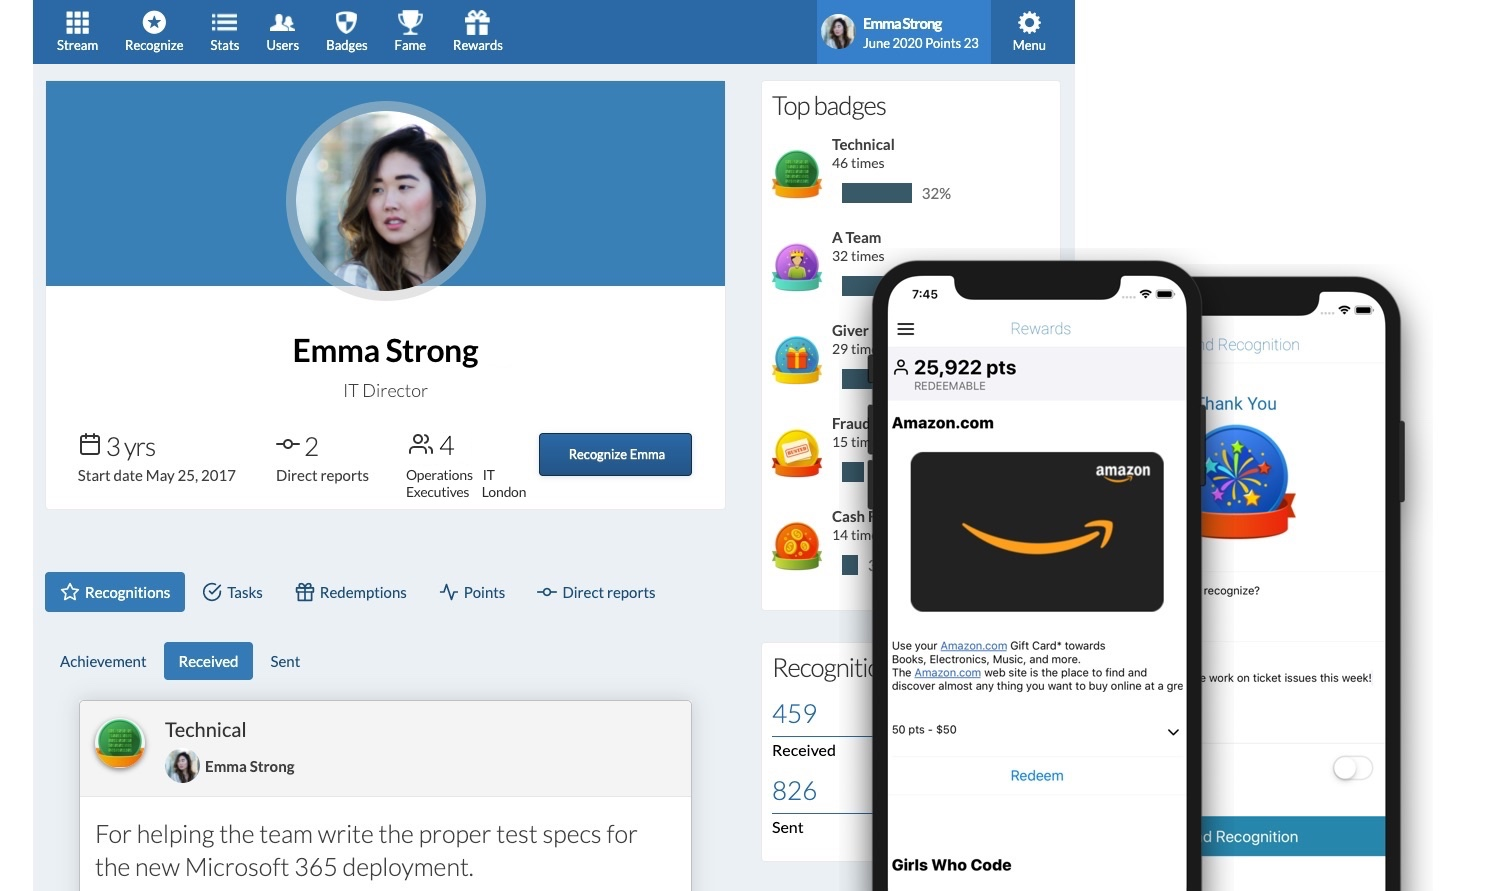 The employee recognition software, Recognize, screenshot showing an employees user profile with top recognitions, top badges, and direct report information. The mobile app screenshots show sending a recognition for just Thanks or redeeming an Amazon gift card.